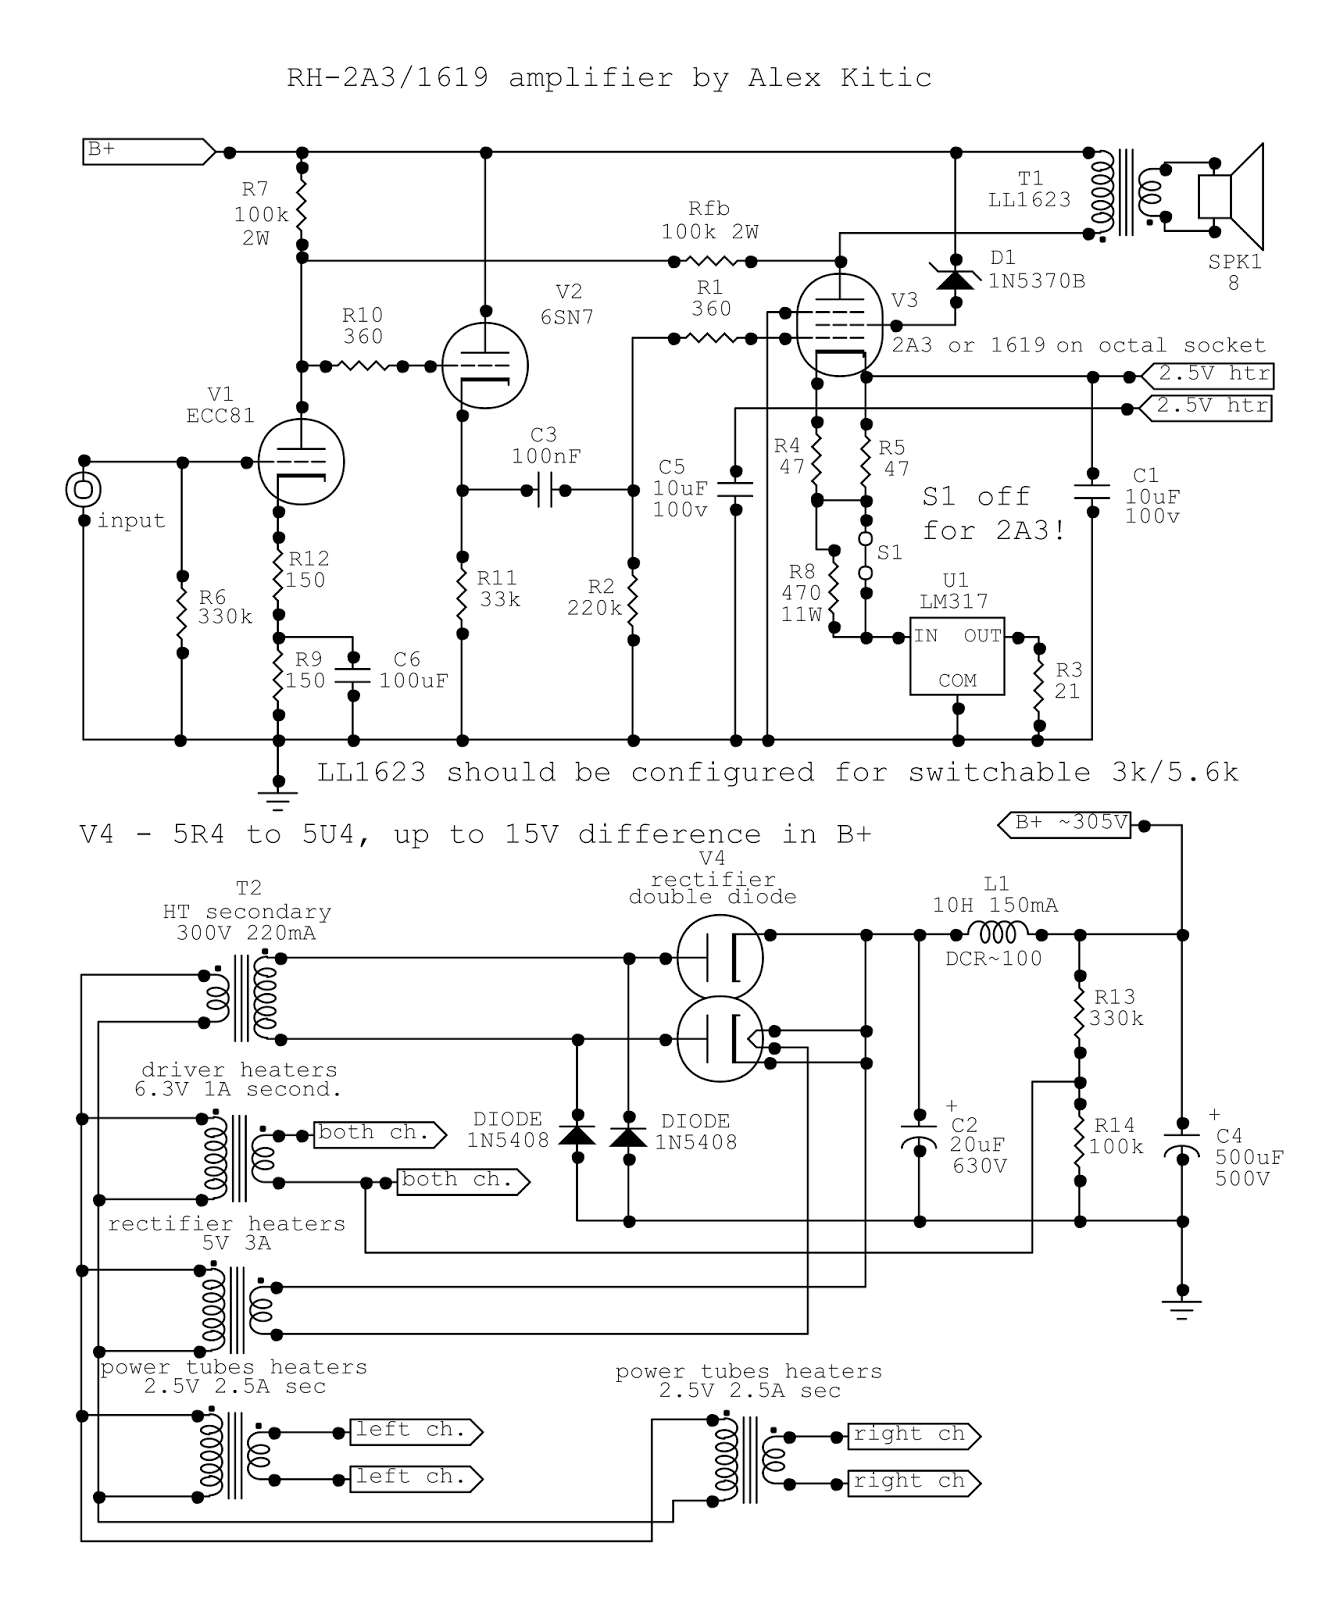 6a3 Amplifier Schematics - Wiring Diagram Set